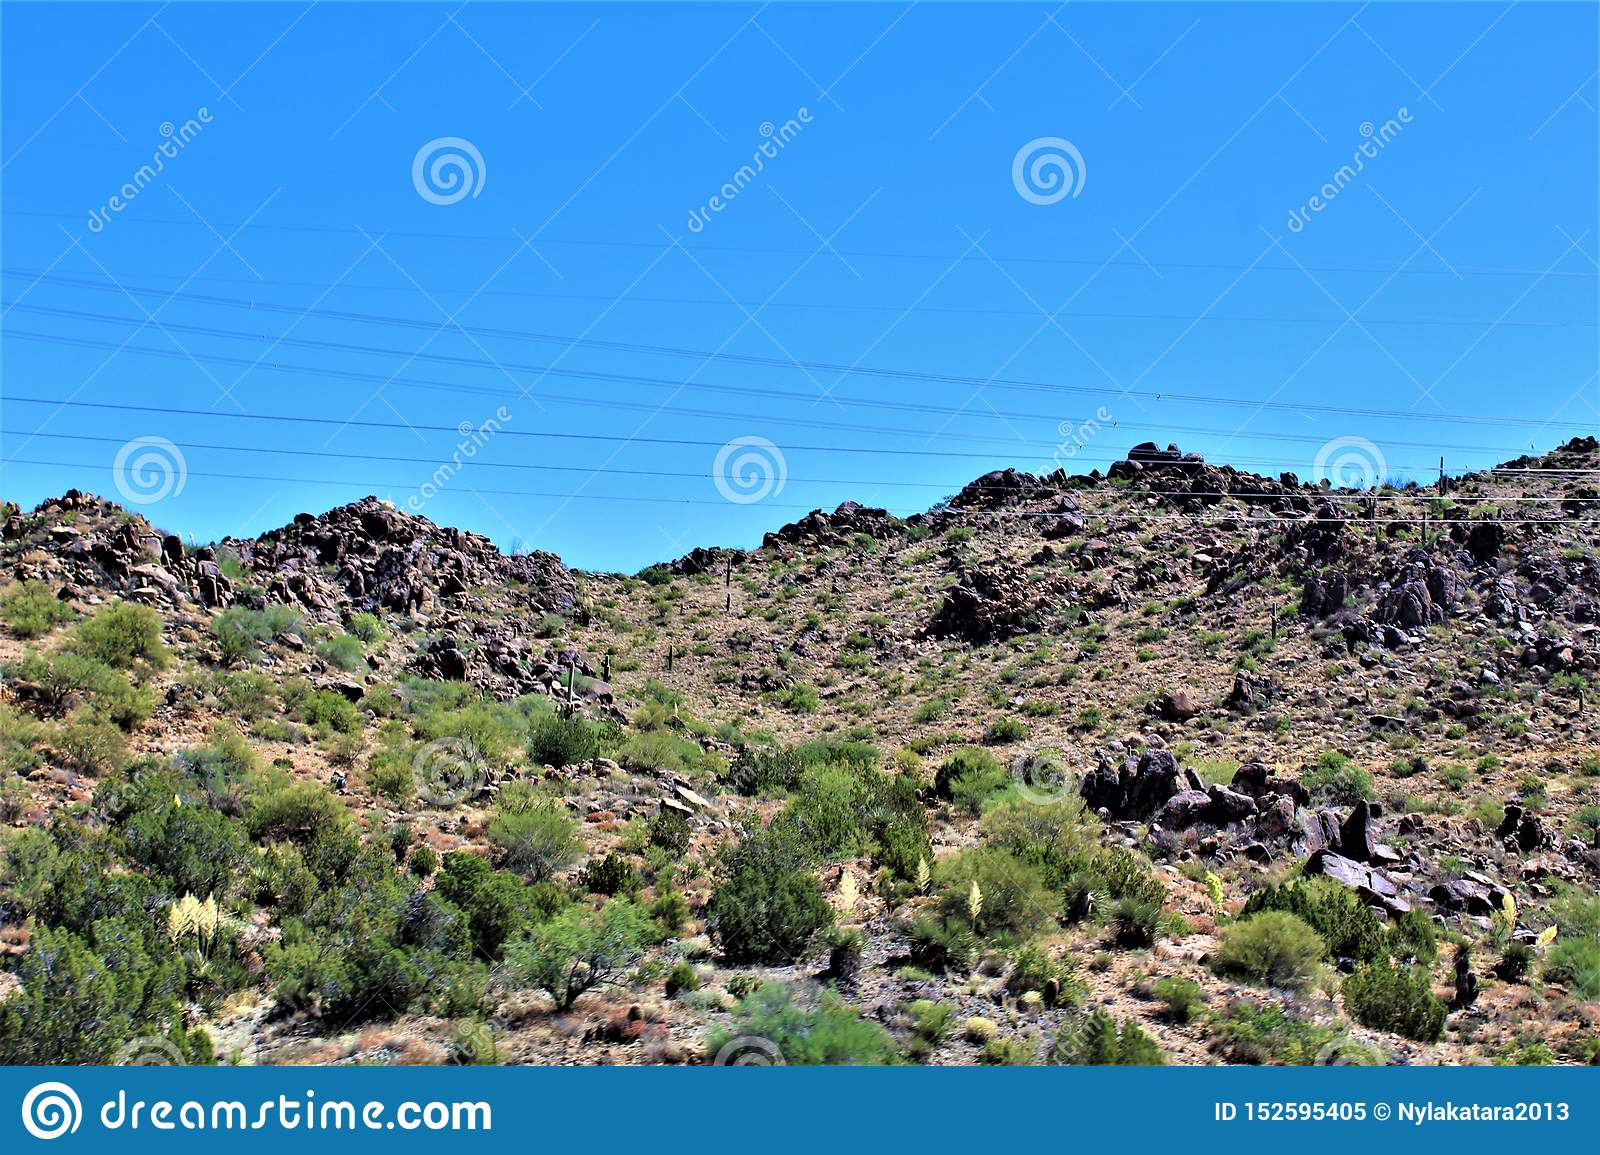 Scenic landscape view Phoenix to Las Vegas, Arizona, United States